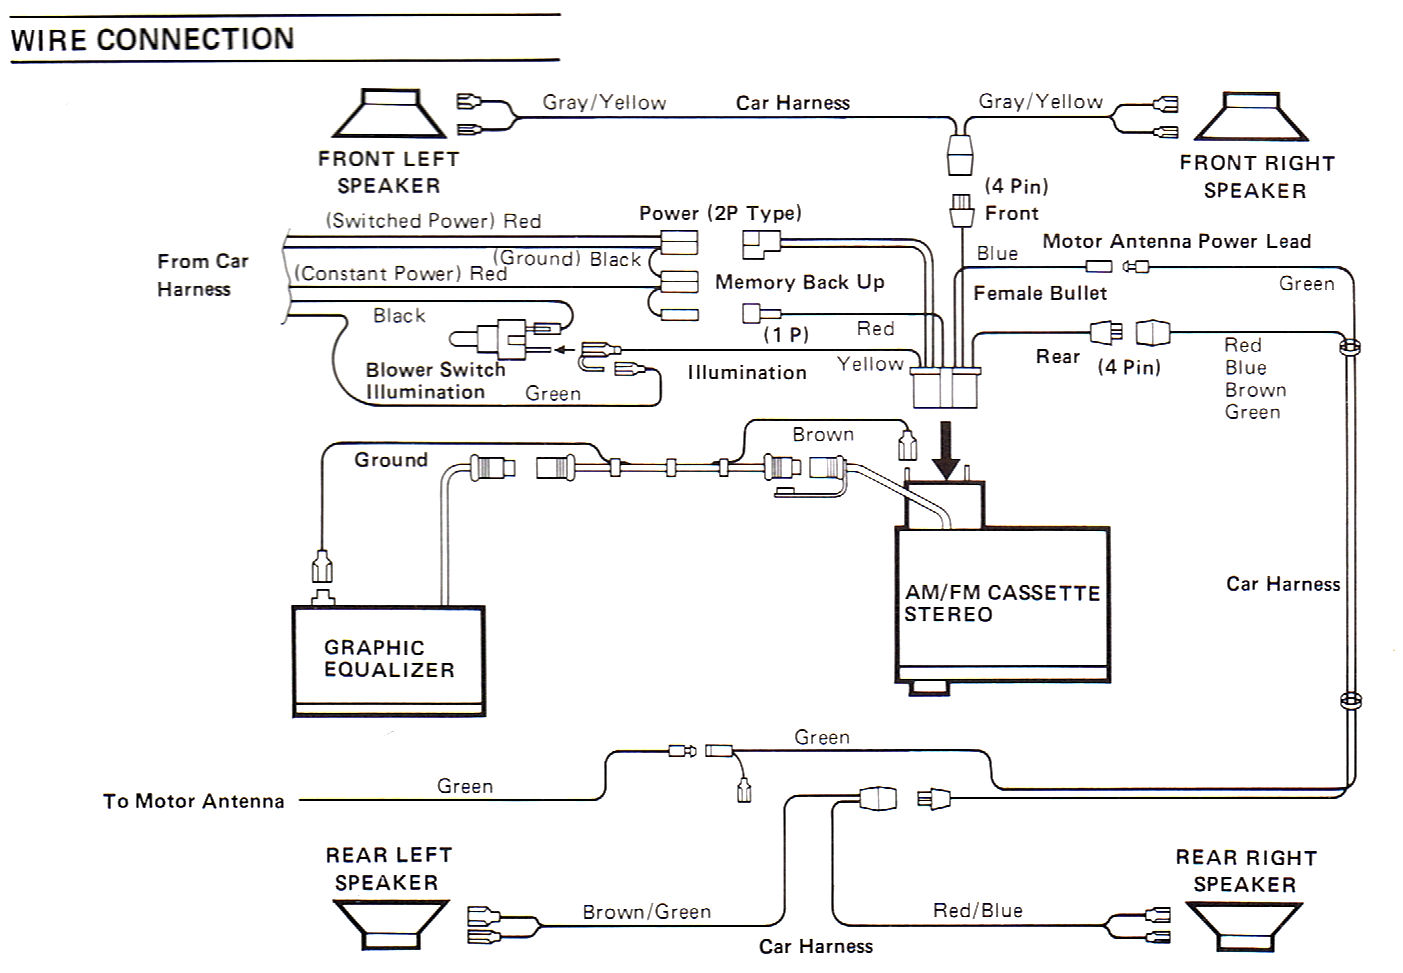 saabclarion_schematics_84 85 clarion equalizer wiring diagram clarion wiring diagrams collection  at reclaimingppi.co